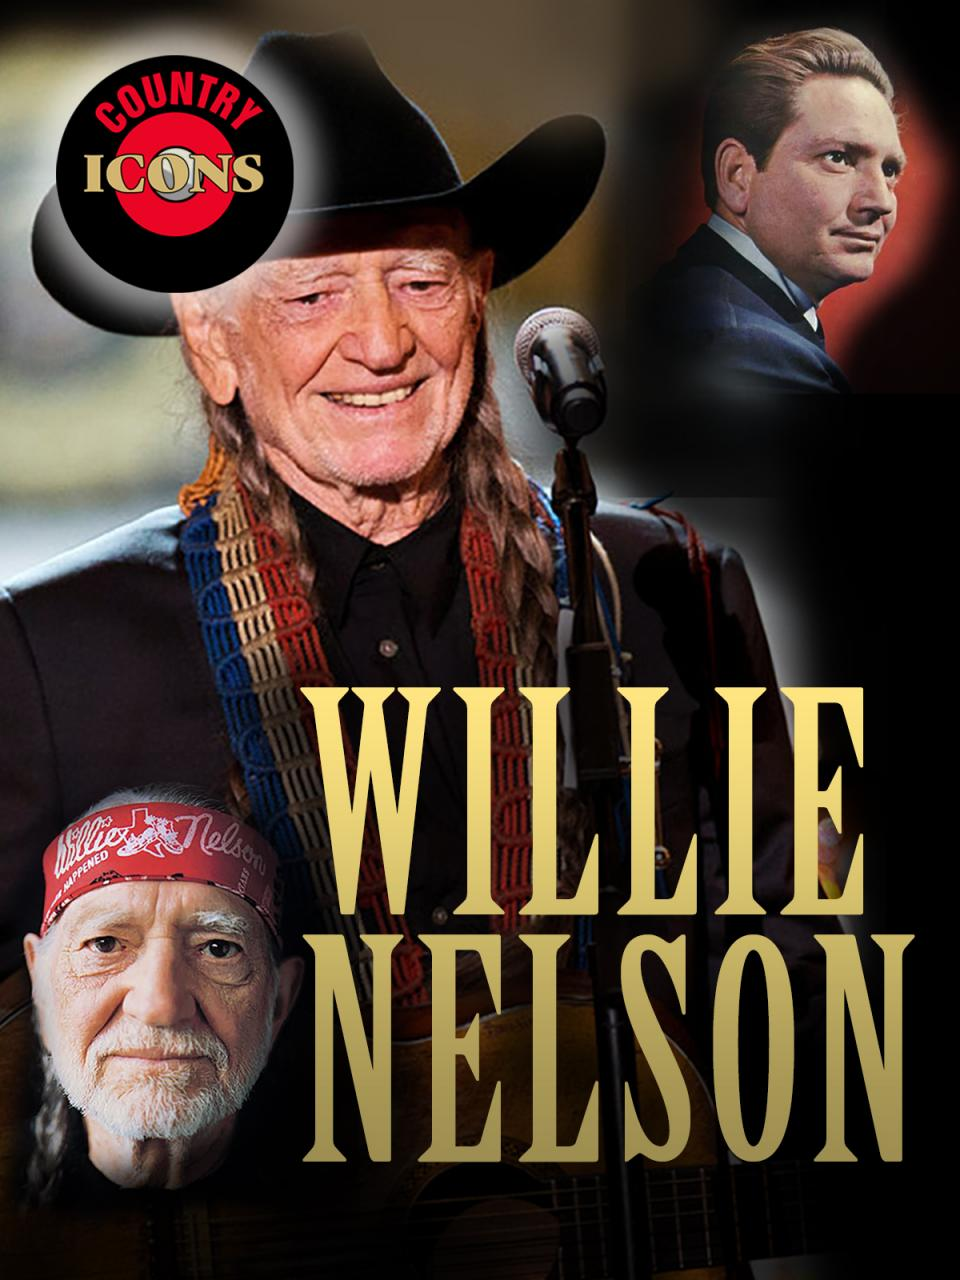 Country Icons: Willie Nelson